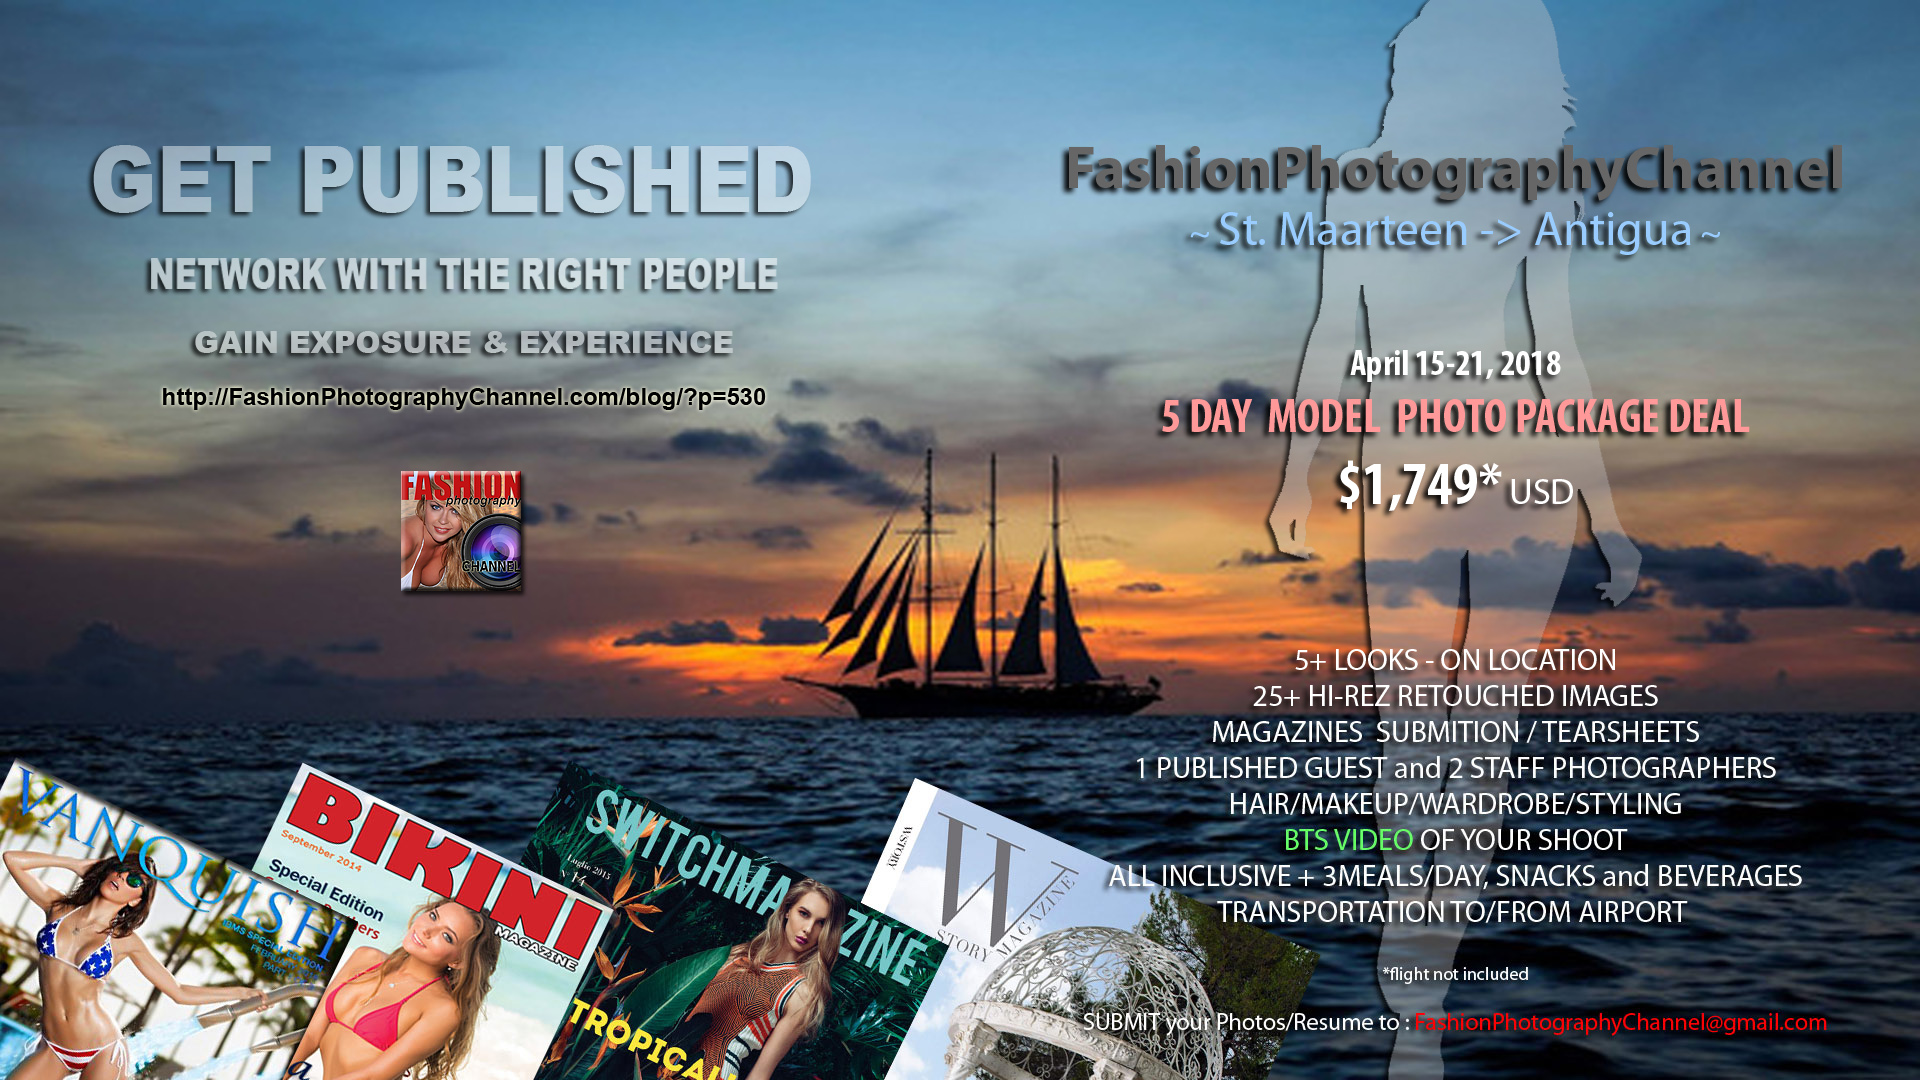 Additional info for Models & Photographers planning to attend cruise on SailWindjammer to St.Maarten - Antigua : April 15-21, 2018